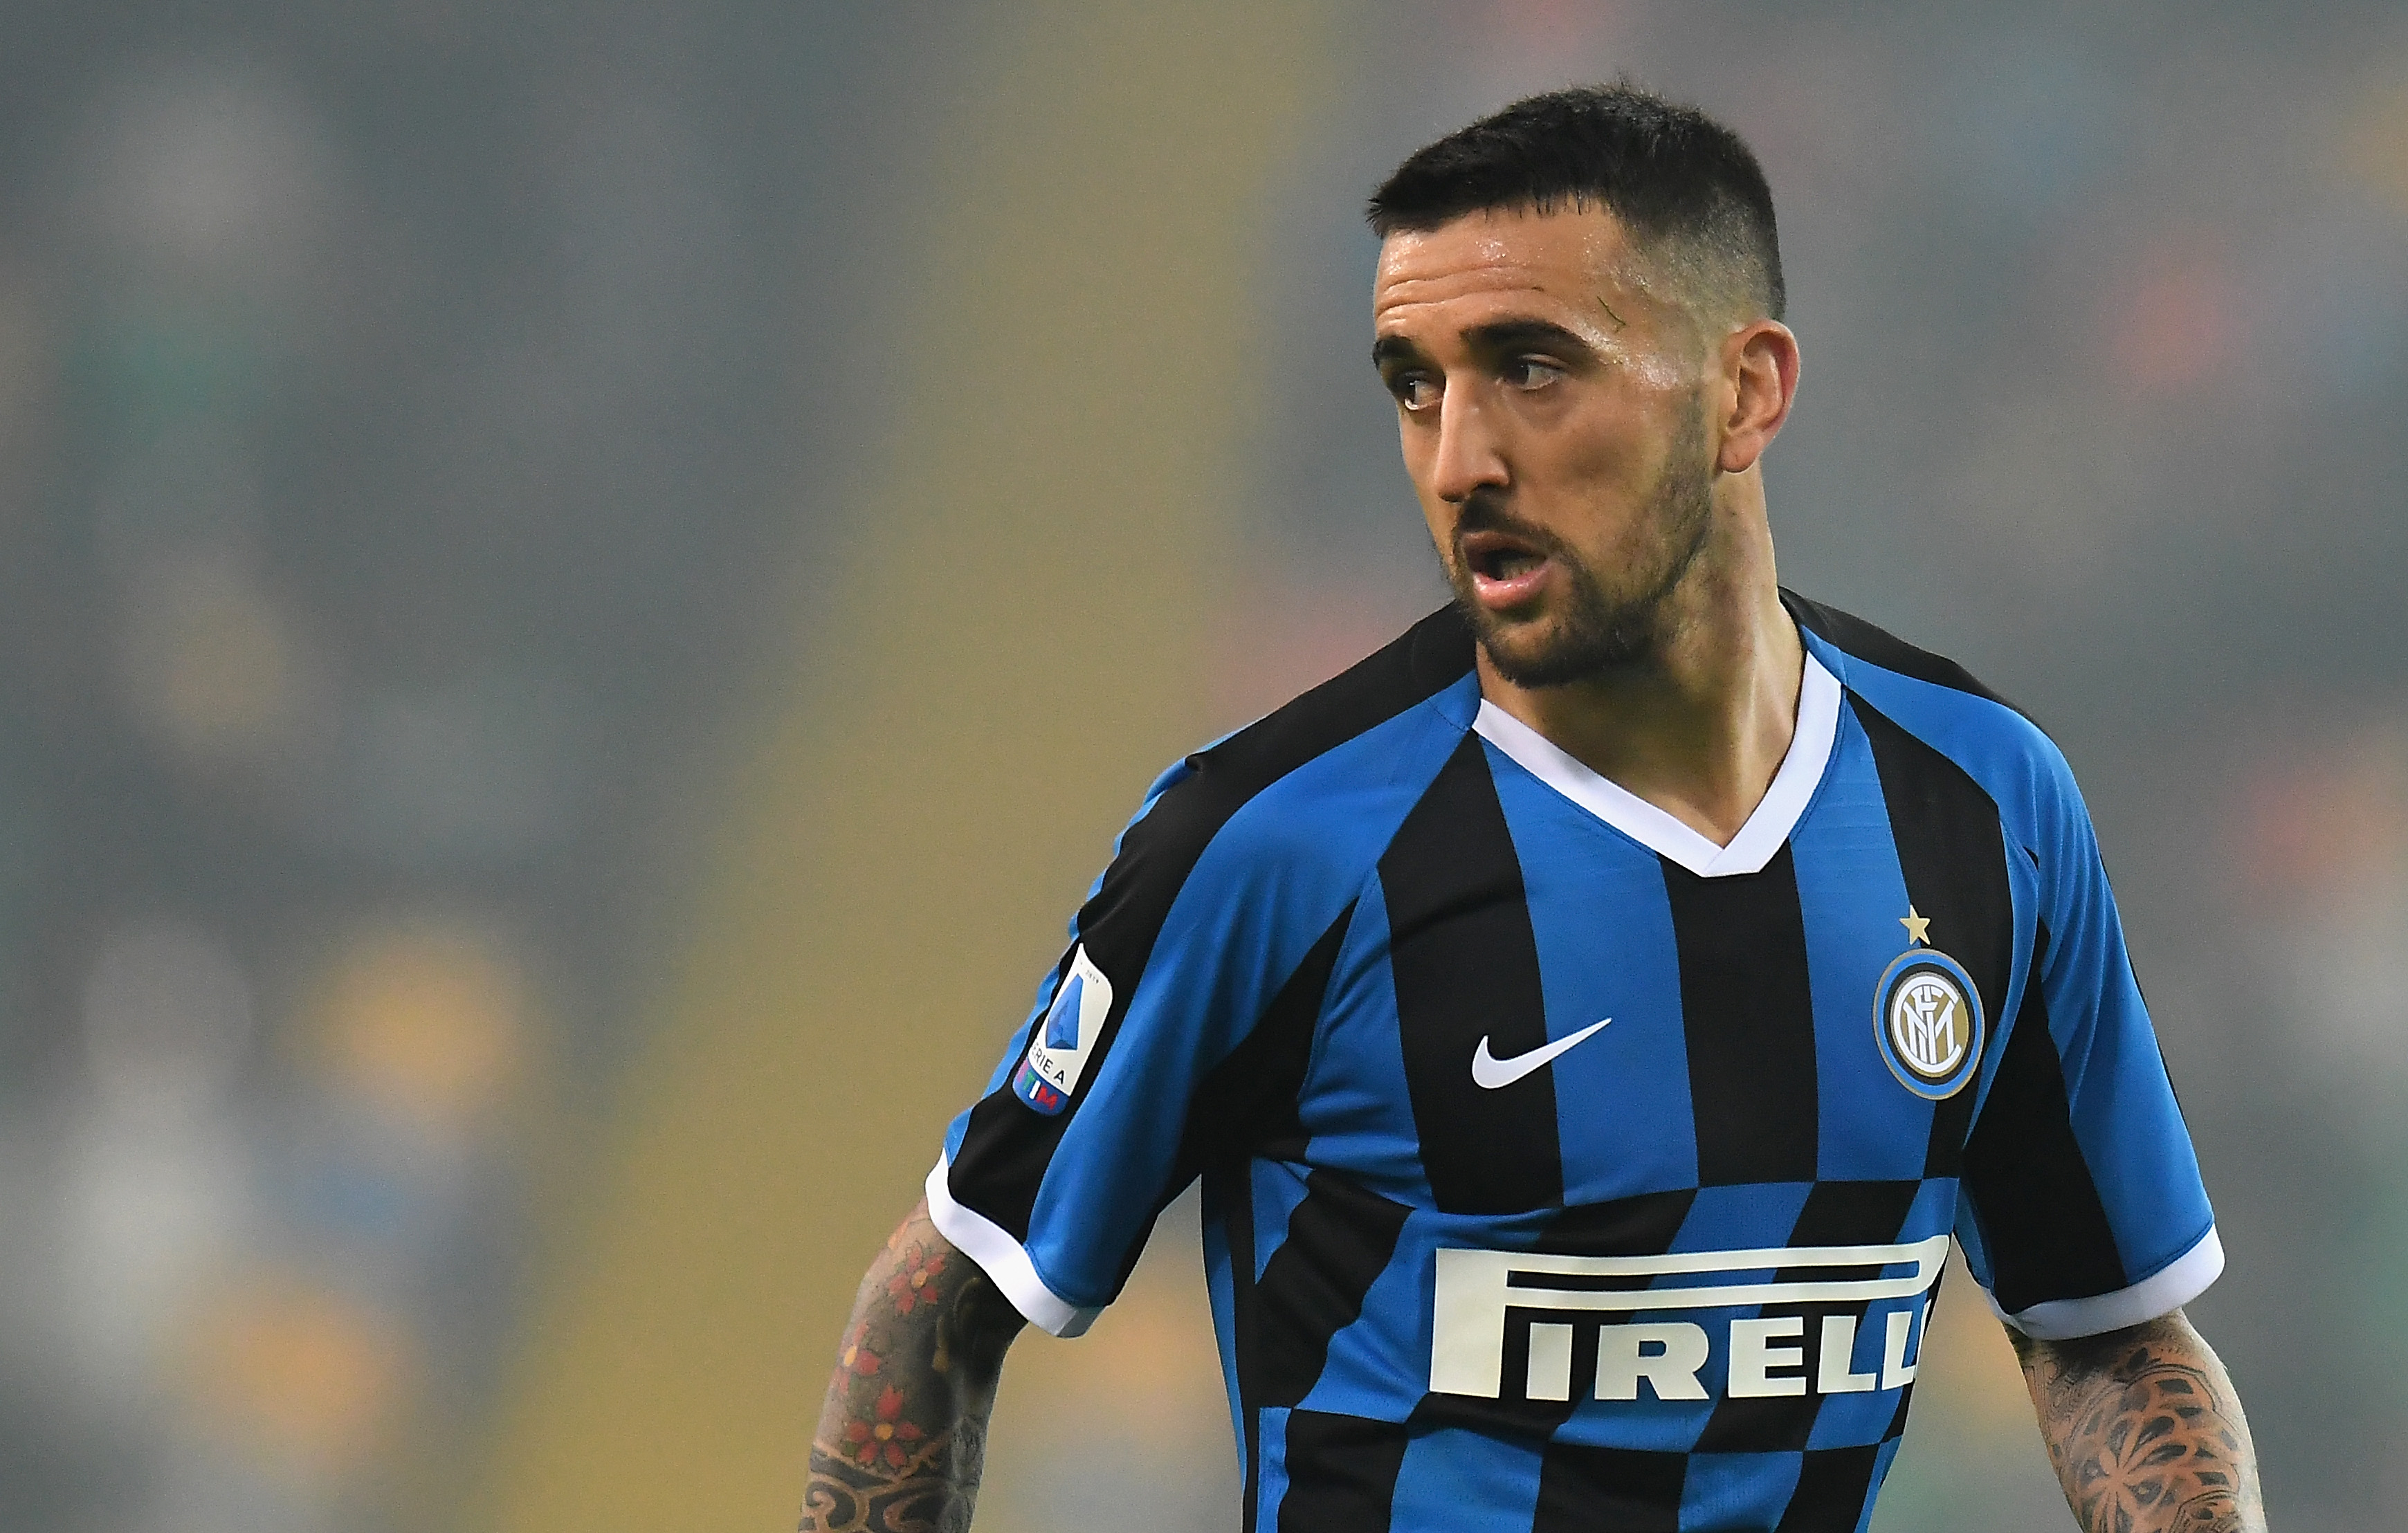 Matias Vecino unavailable for Inter Milan (Photo by Alessandro Sabattini/Getty Images)